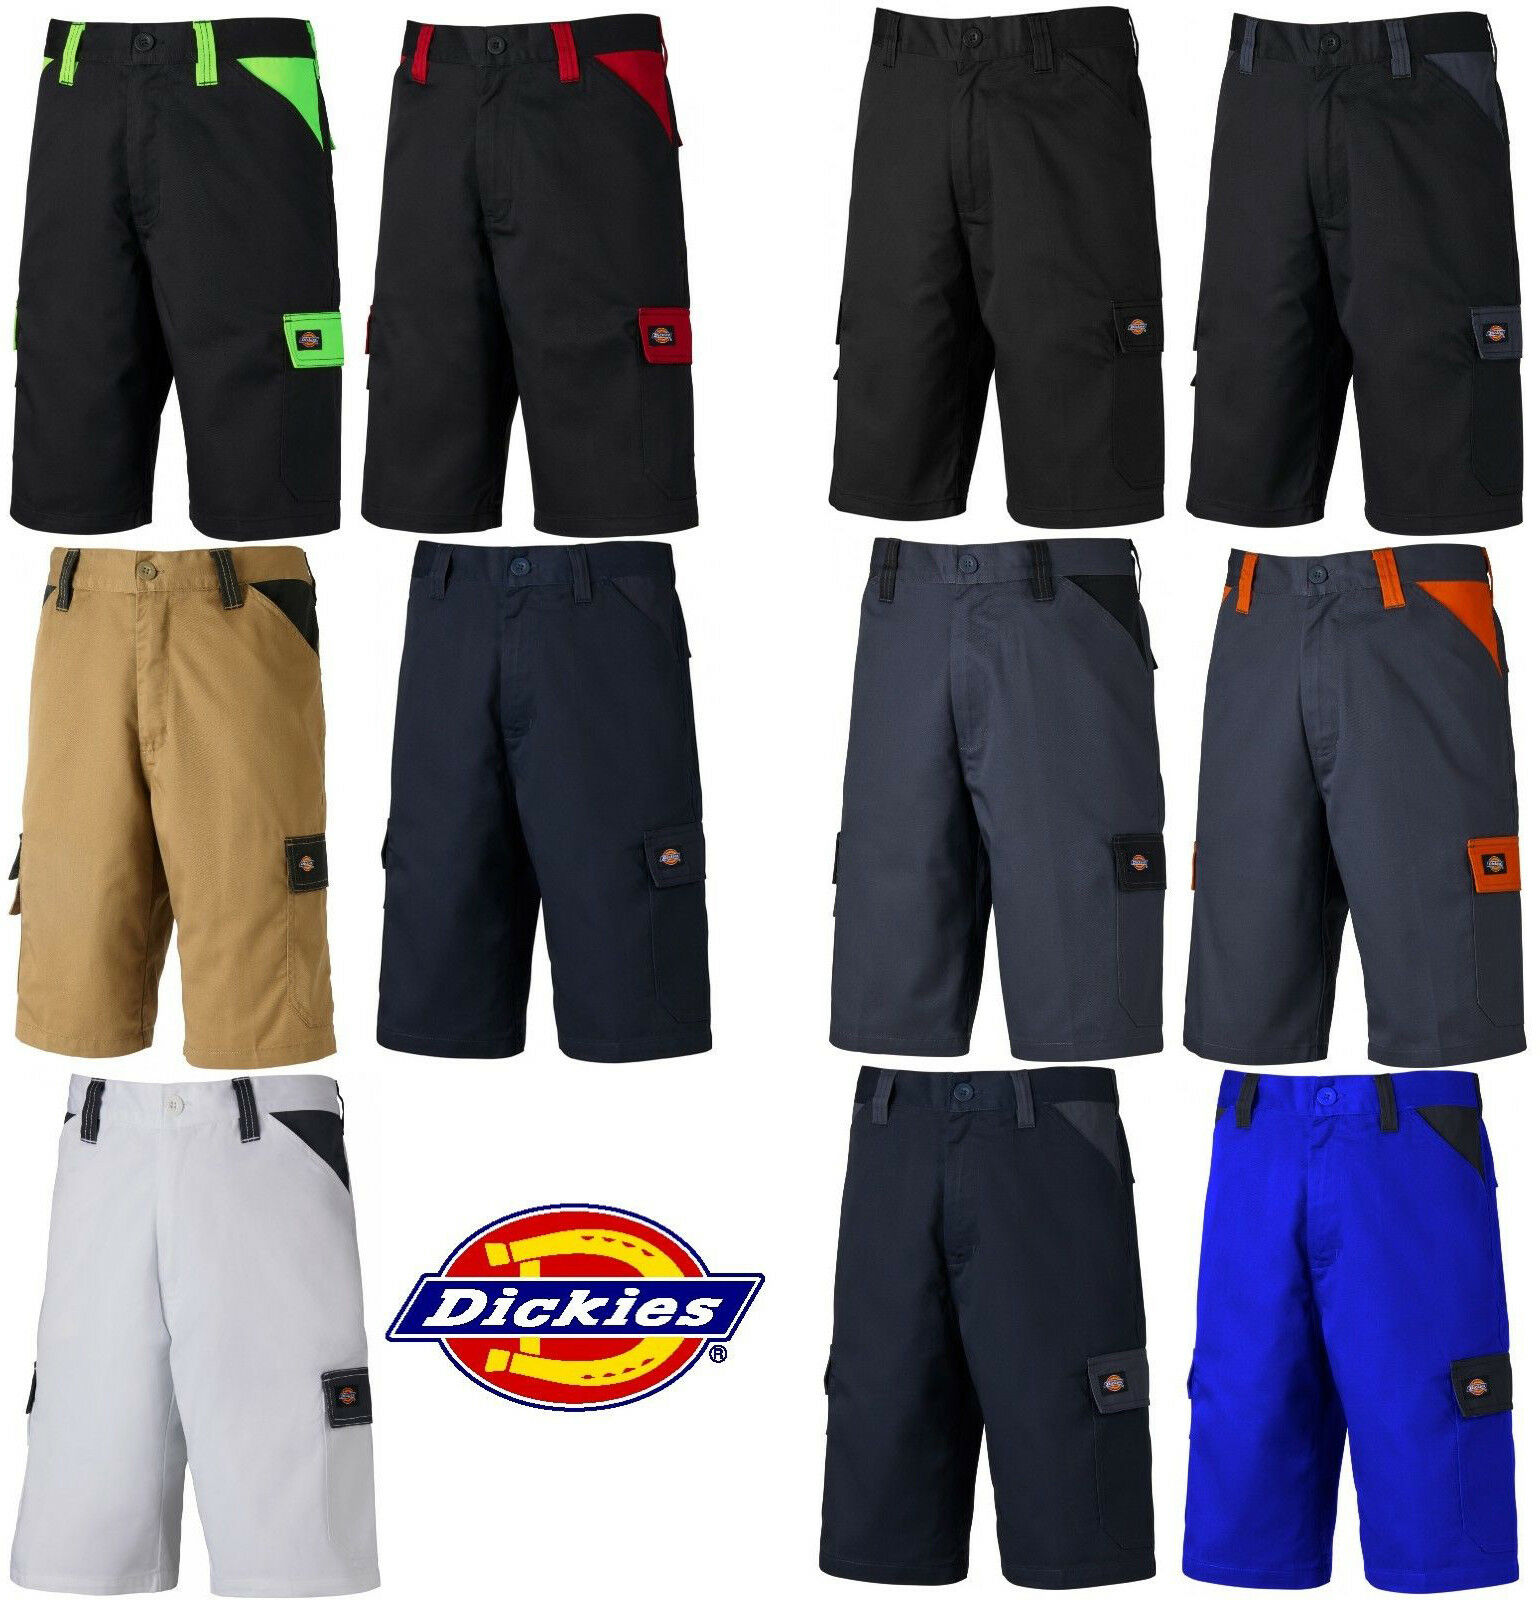 c13cabcf0391f3 Dickies Workwear kurze Arbeitshose Everyday Shorts Multifunktion Handwerker  *